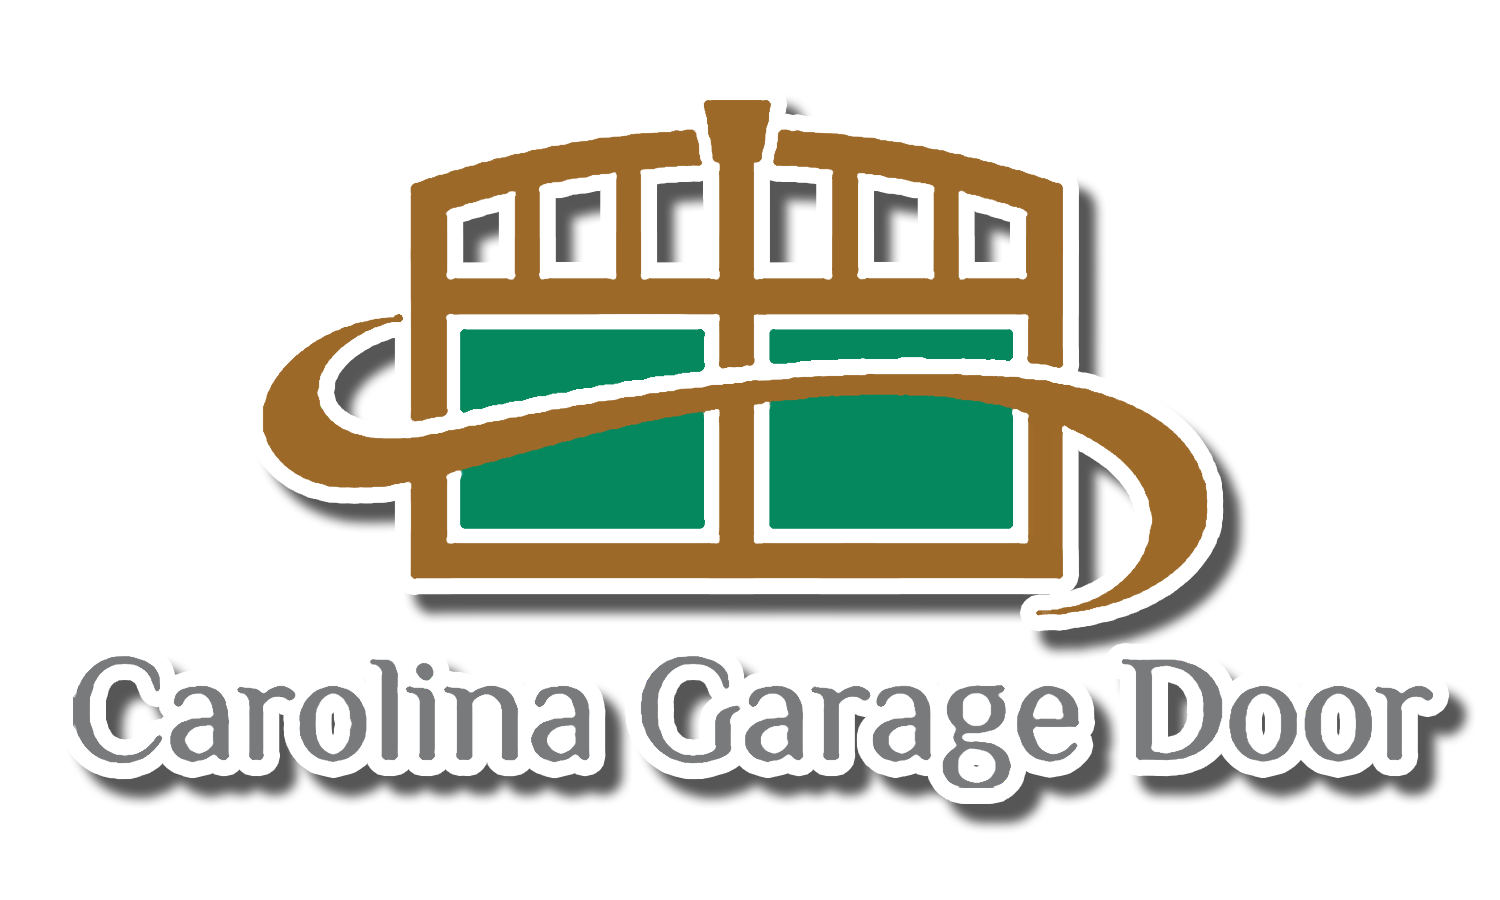 Attractive Carolina Garage Door Logo 1.png